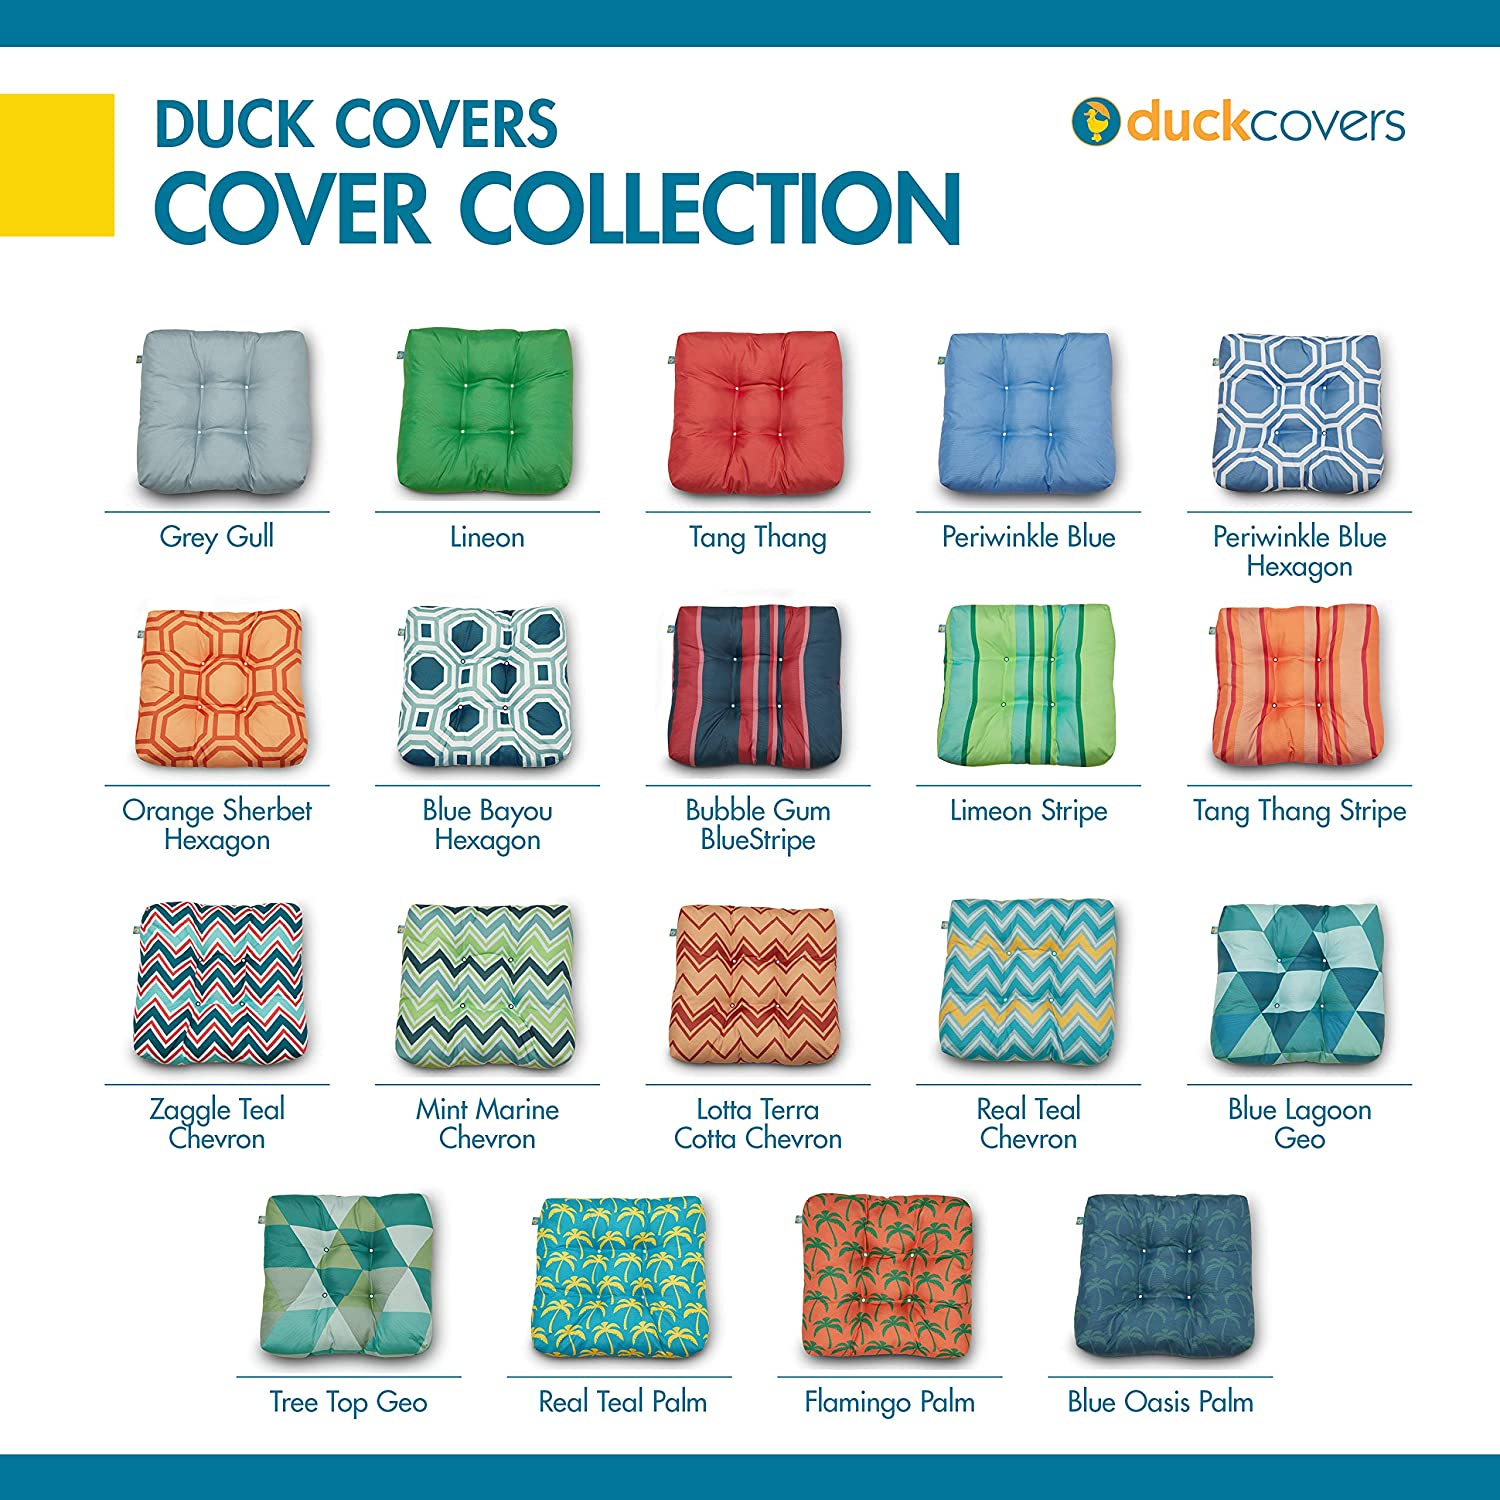 Blue Bayou Hexagon 2-Pack Mint Marine Chevron 2 Pack Duck Covers Water-Resistant 19 x 19 x 5 Inch Indoor Outdoor Seat Cushions